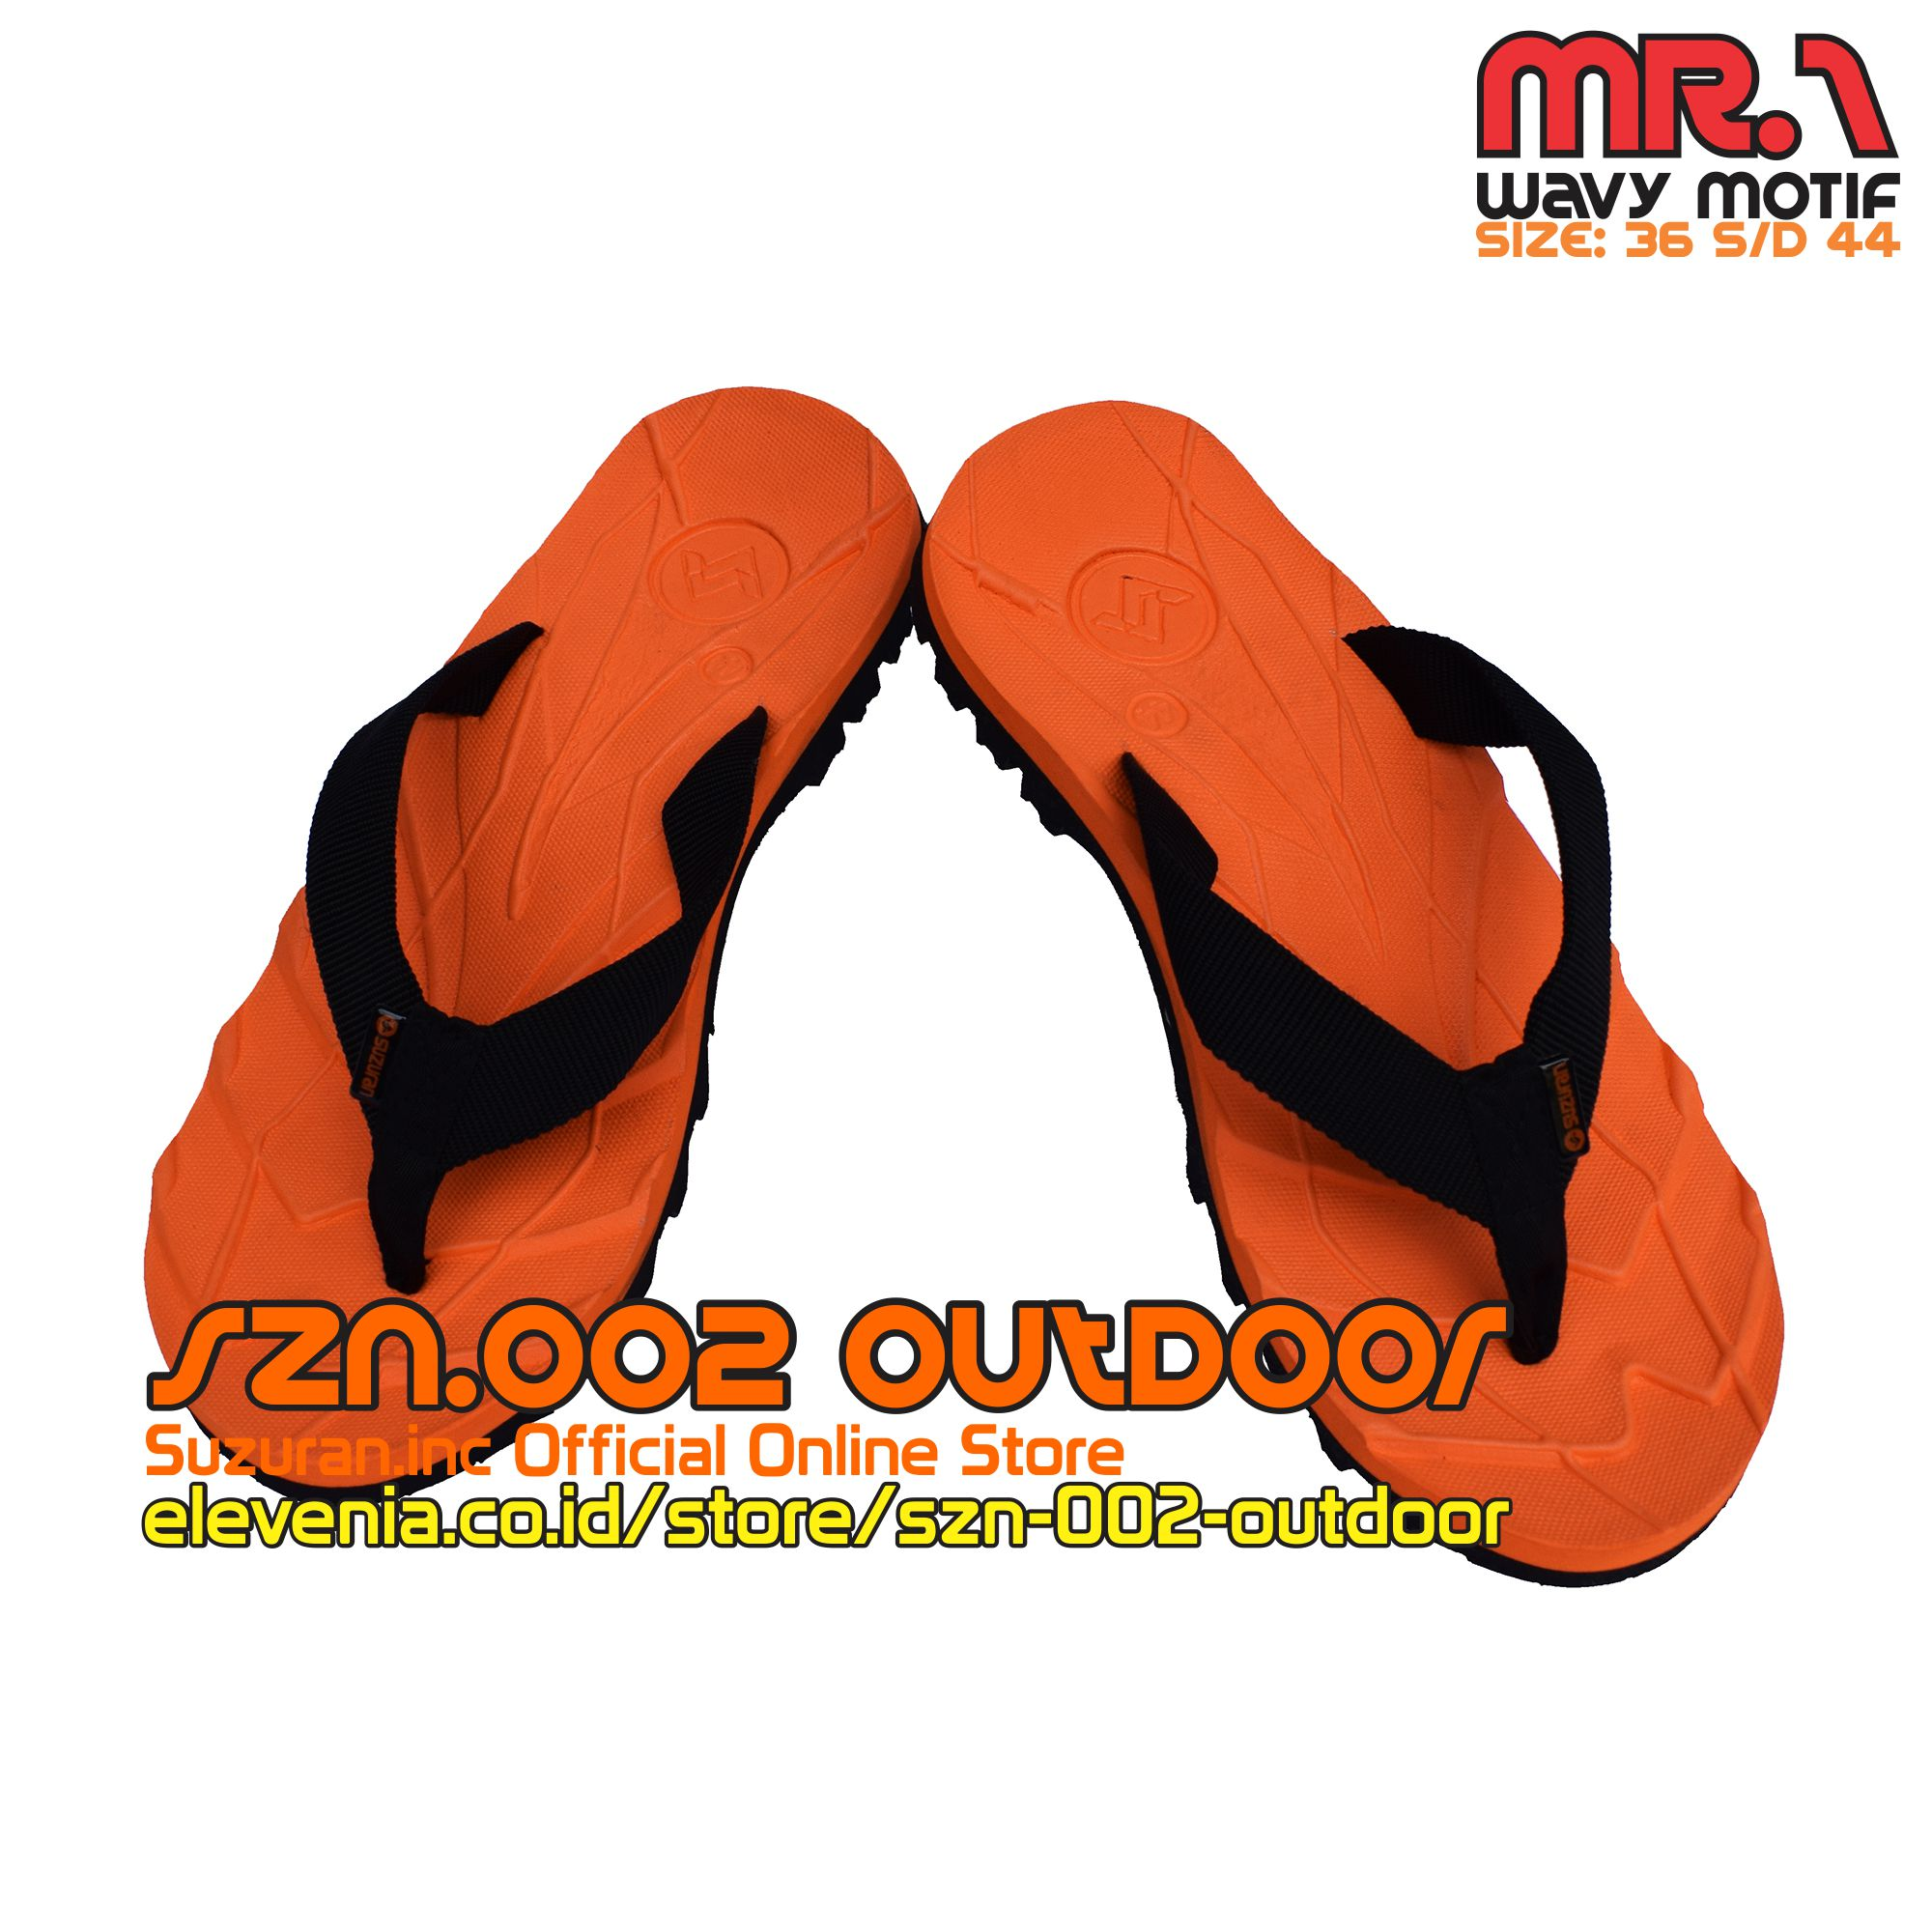 Suzuran Sandal Gunung Cross Thumb Mr2 Brown Flip Flop Mr1 Orange W Black Elevenia